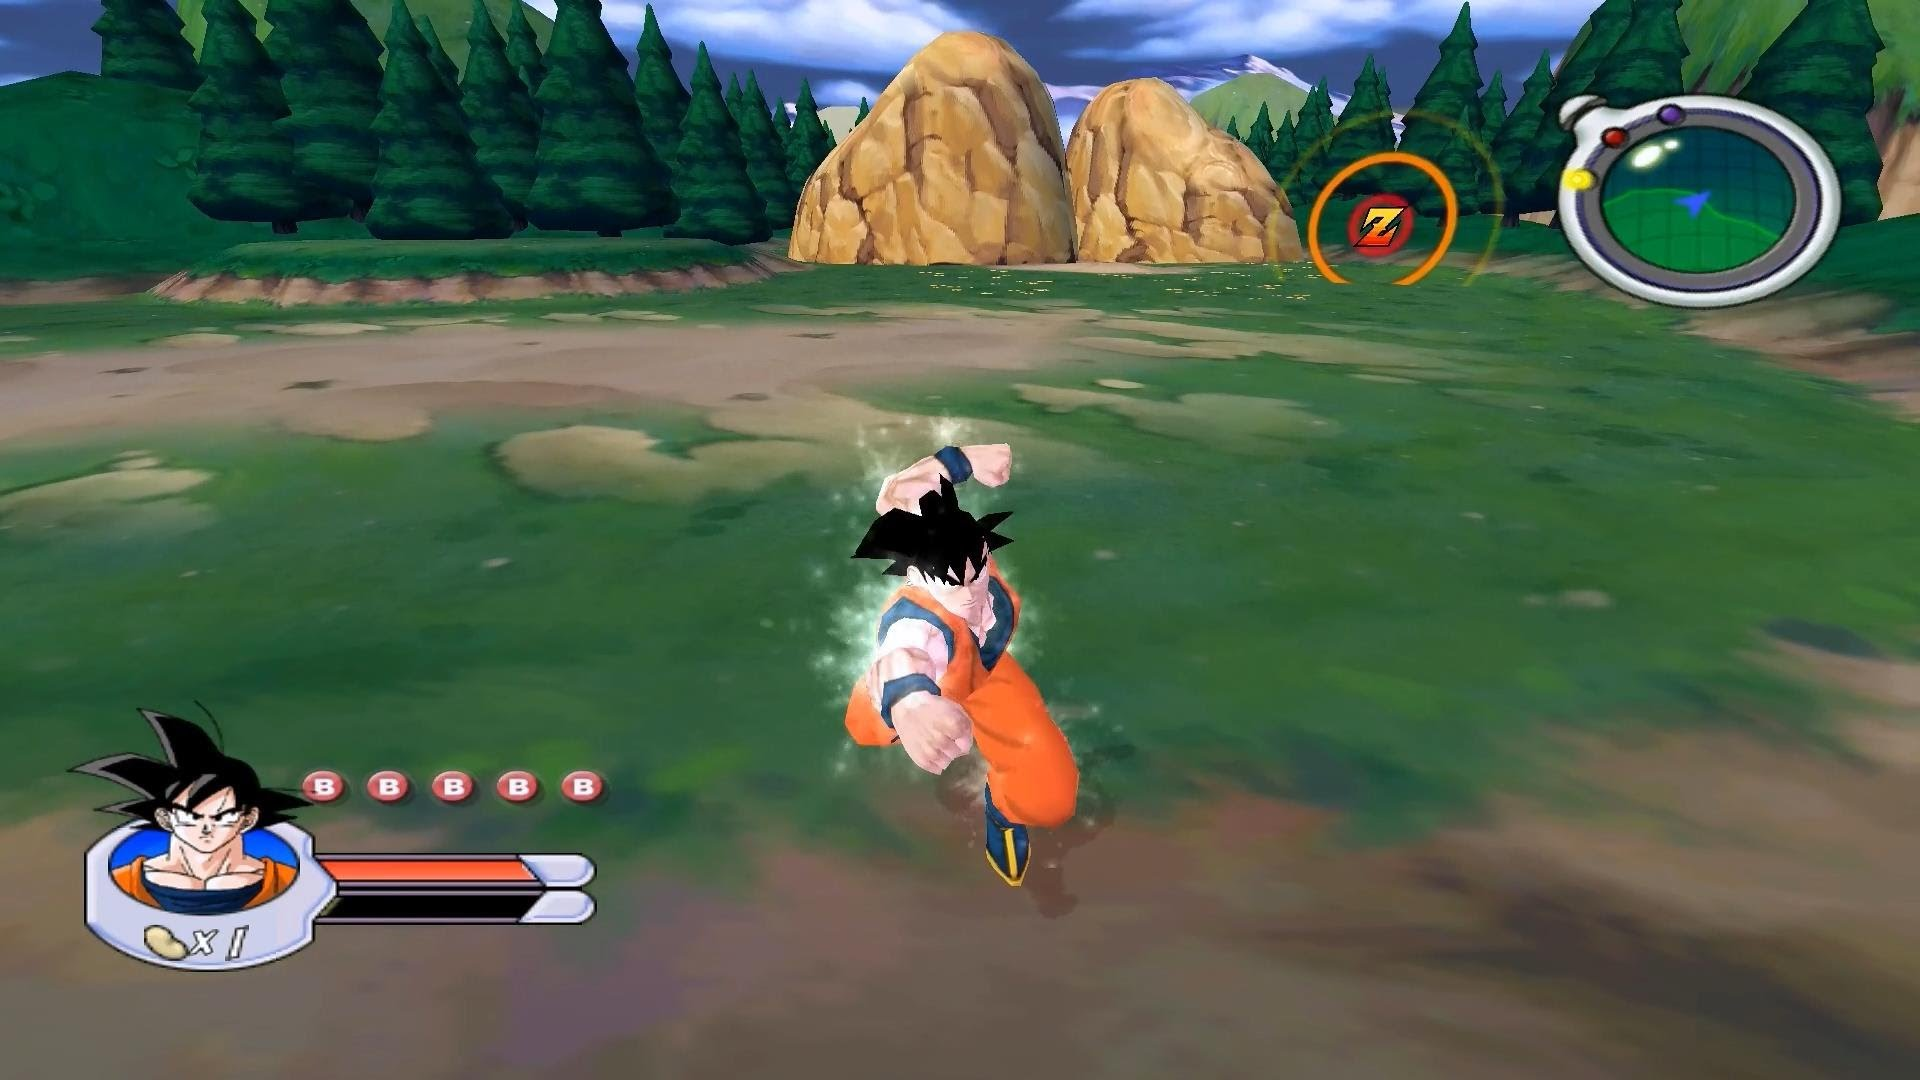 Dragon Ball Z Sagas - GameCube ROM - Download for Free ...